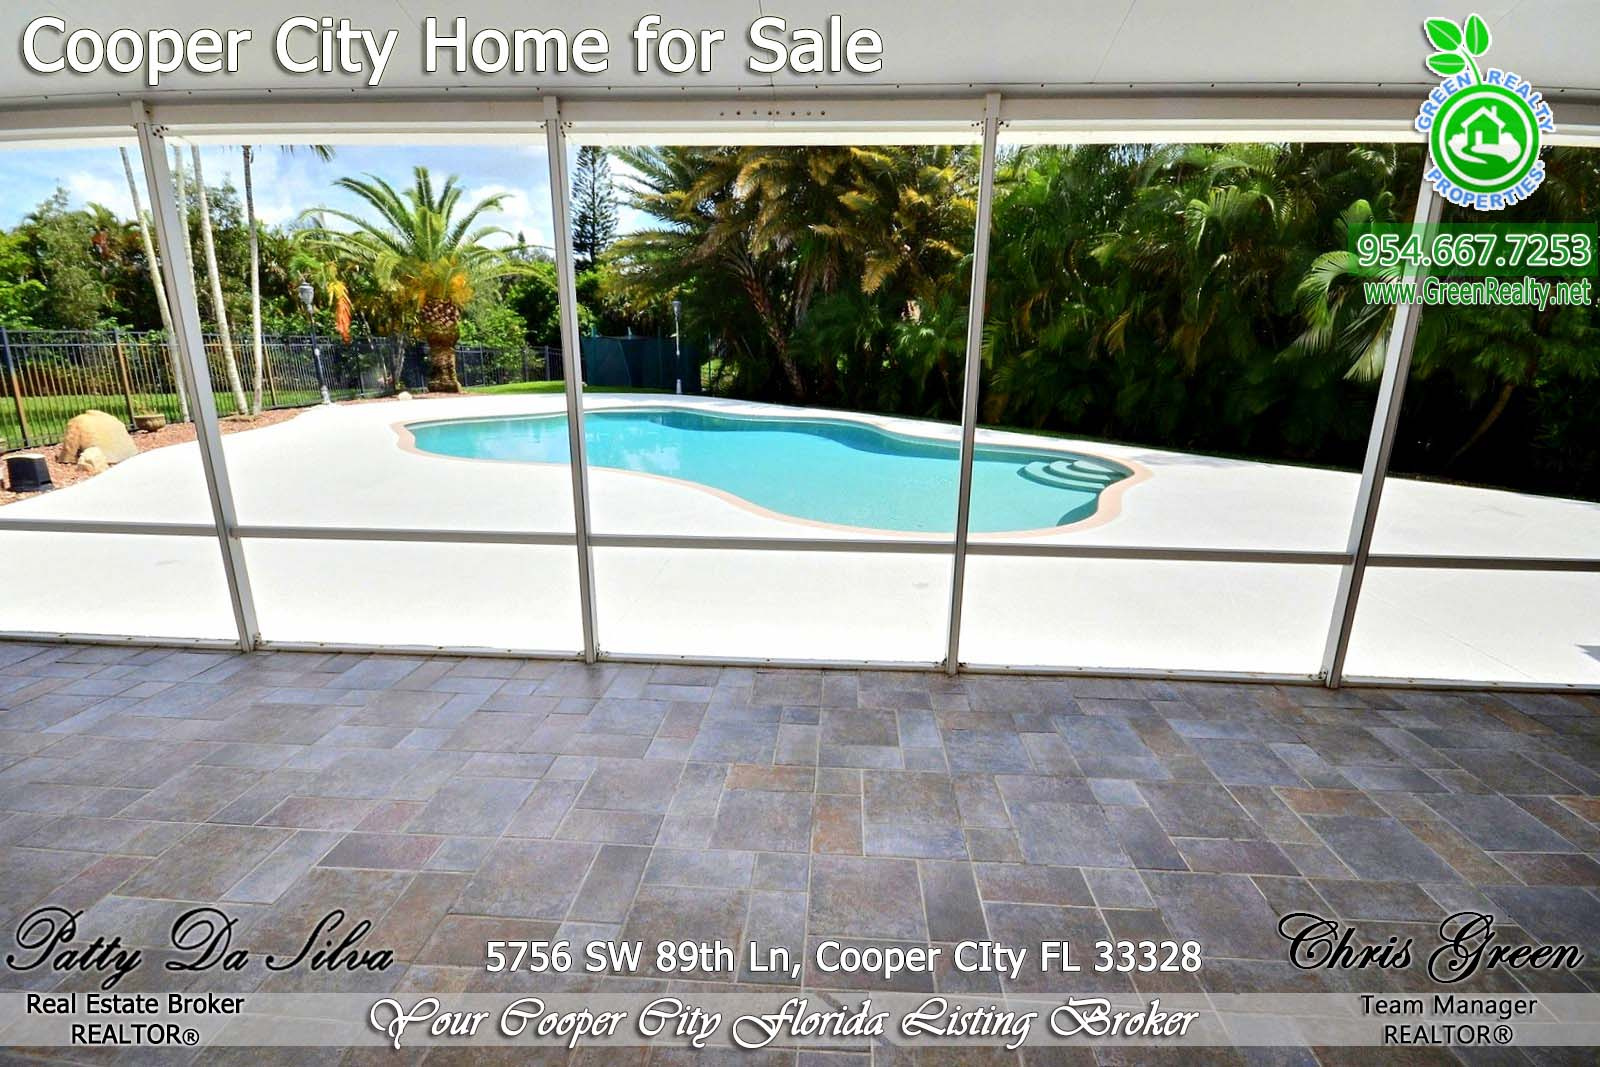 Coopers Pointe - Cooper City Florida Homes For Sale (23)